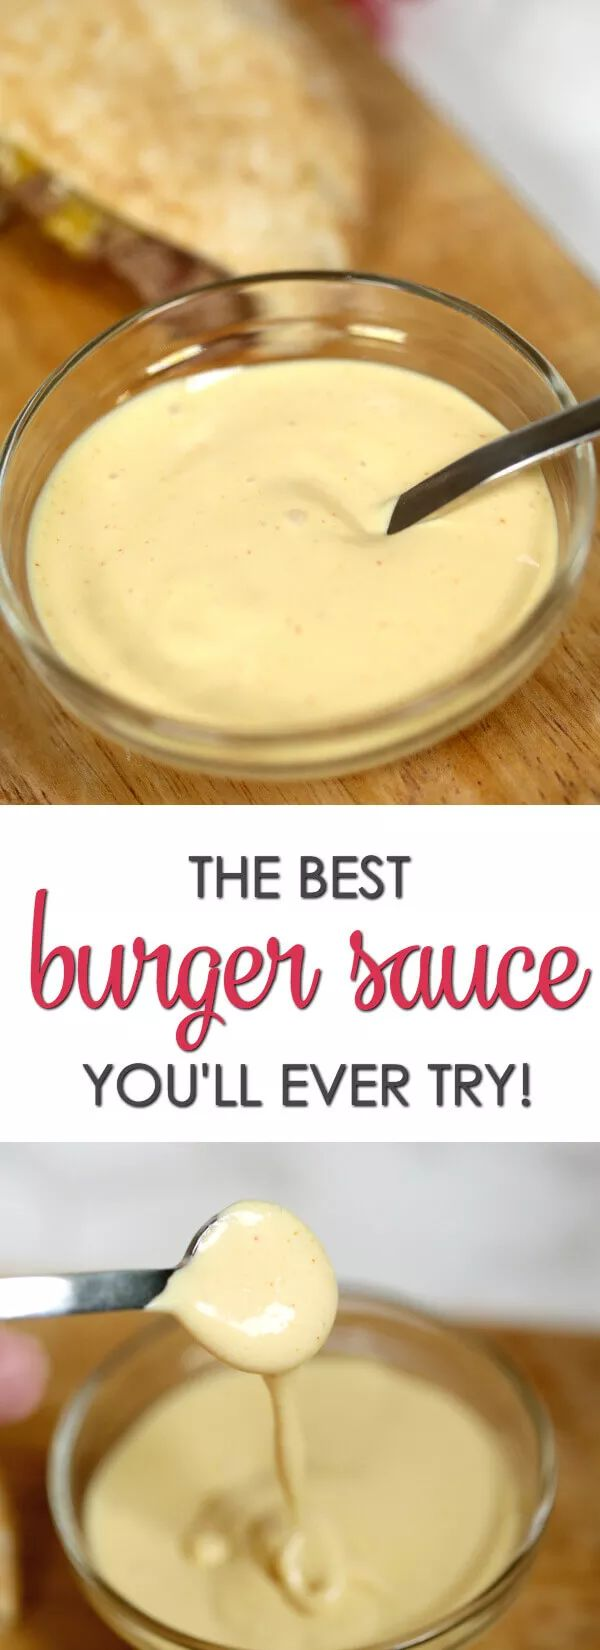 This is the BEST burger sauce recipe you'll ever try! 1/4 cup mayonnaise 1 1/2 teaspoon spicy pickle juice 1 1/2 teaspoon ketchup 1 teaspoon prepared yellow mustard 1/4 teaspoon paprika 1 clove garlic grated 1 teaspoon onion grated It goes great on burgers, fries and more